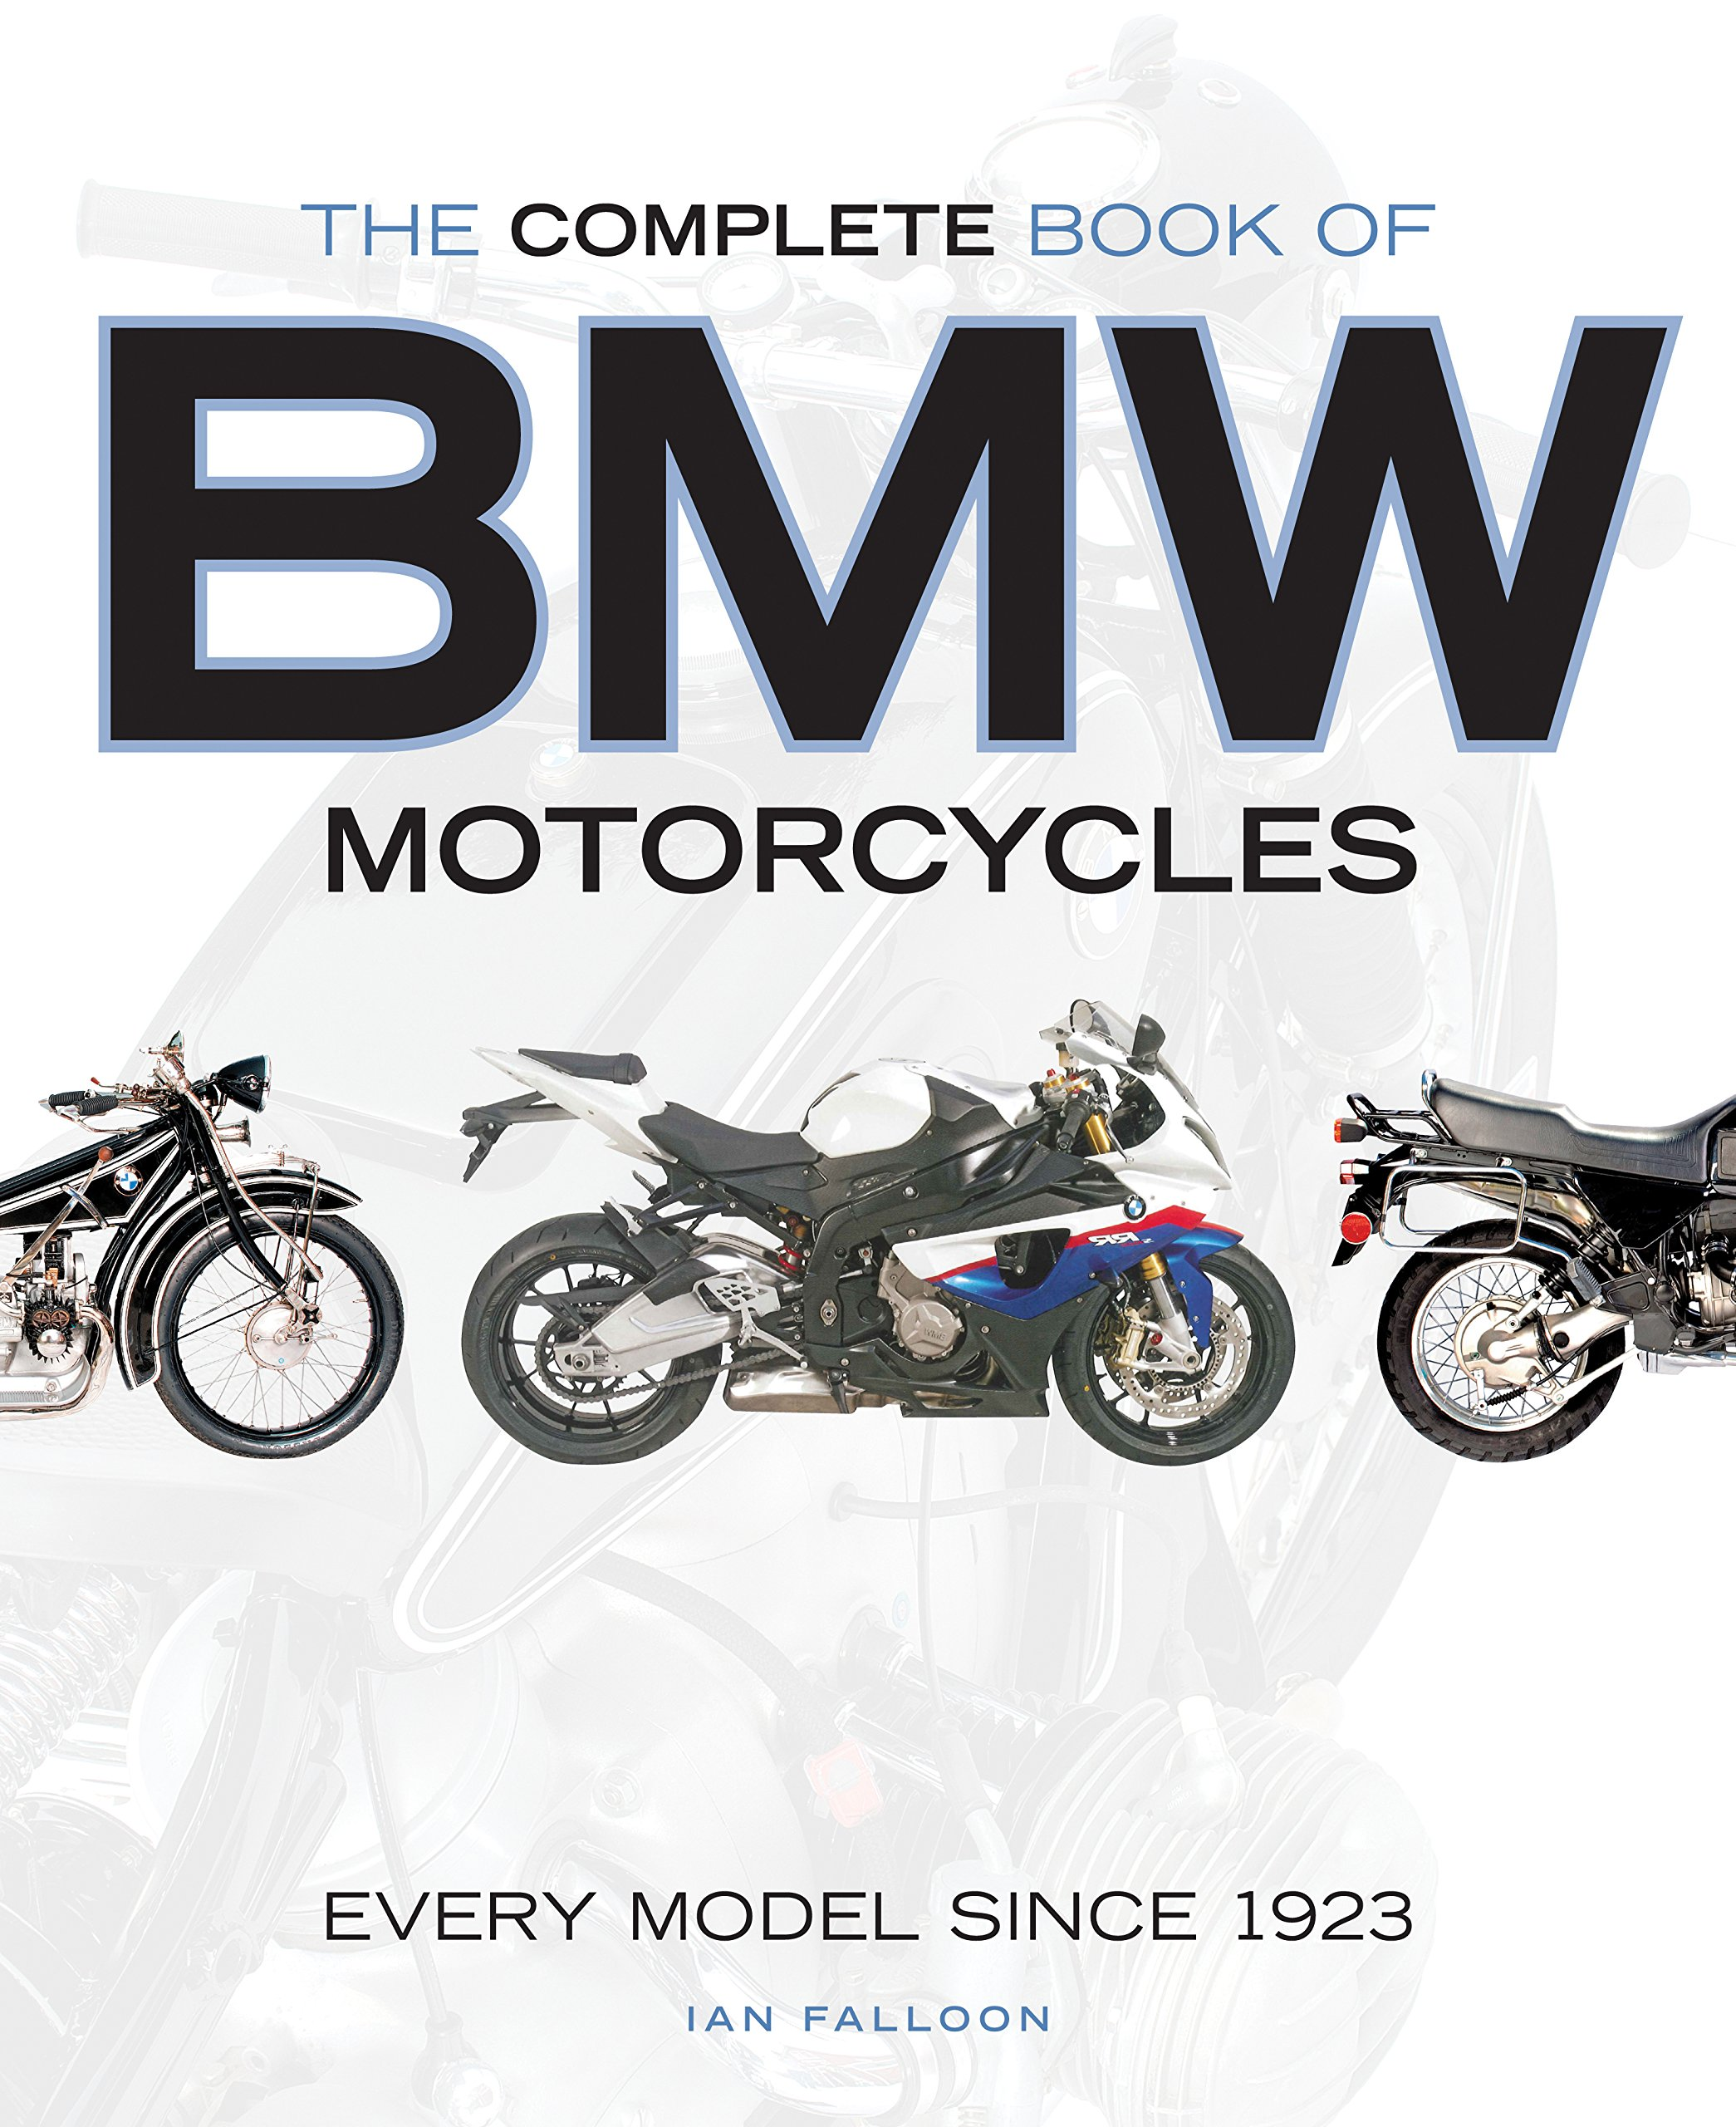 The Complete Book Of Bmw Motorcycles Every Model Since 1923 Ian Top Line Bikes Falloon 9780760347270 Books